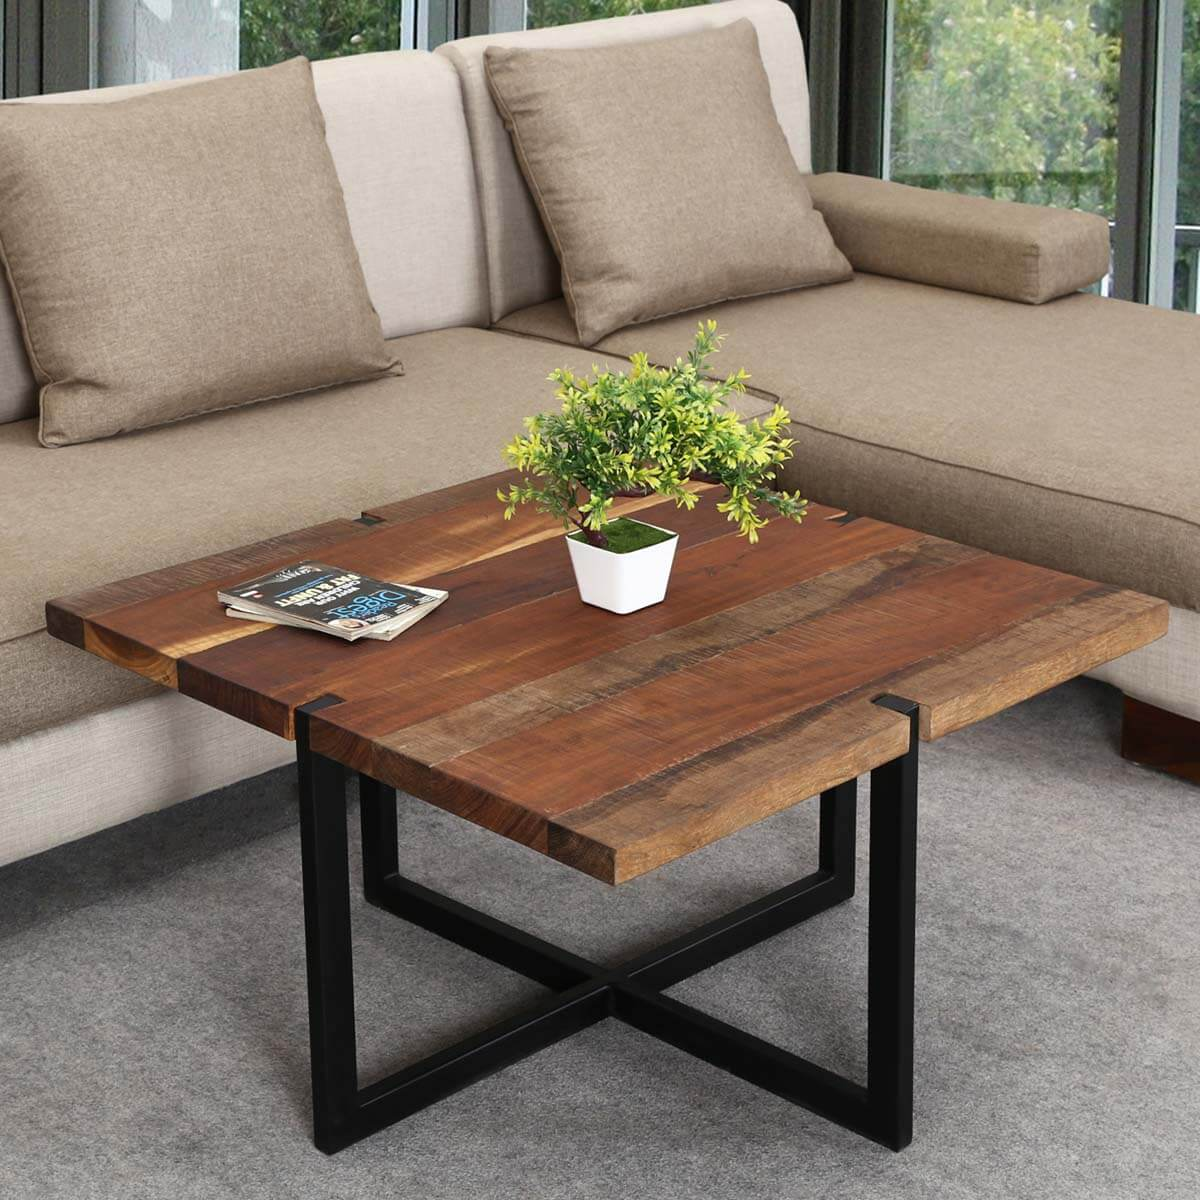 Reclaimed Wood Industrial Coffee Table: Suffolk Simplicity Reclaimed Wood Square Industrial Coffee